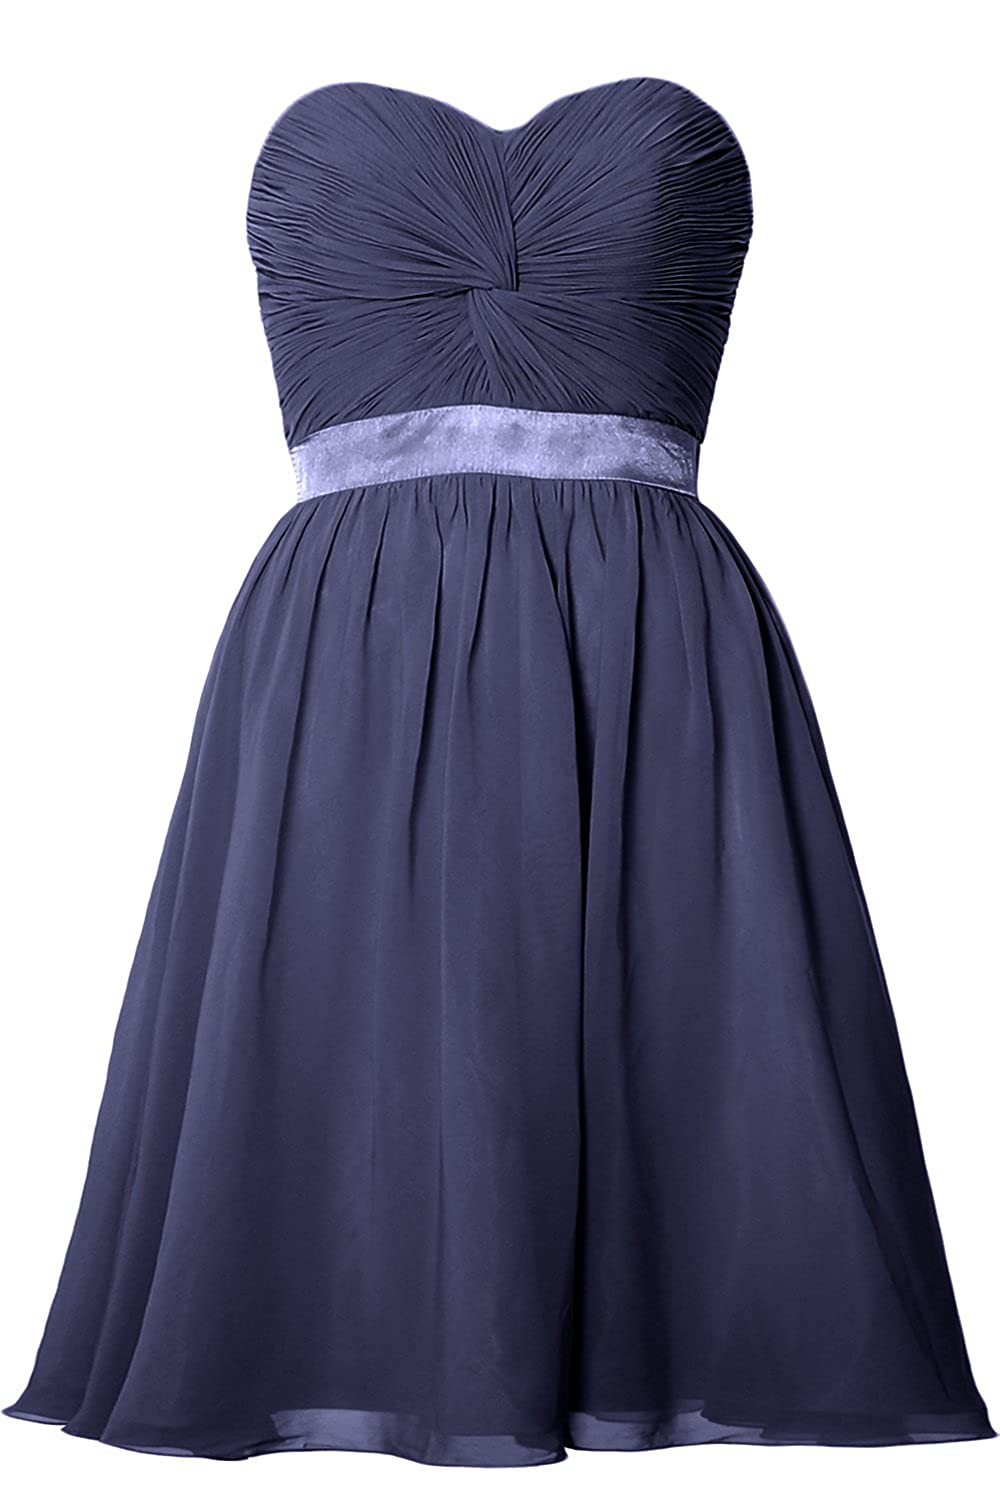 MACloth Women Strapless Lace-up Short Bridesmaid Dress Wedding Party Gown